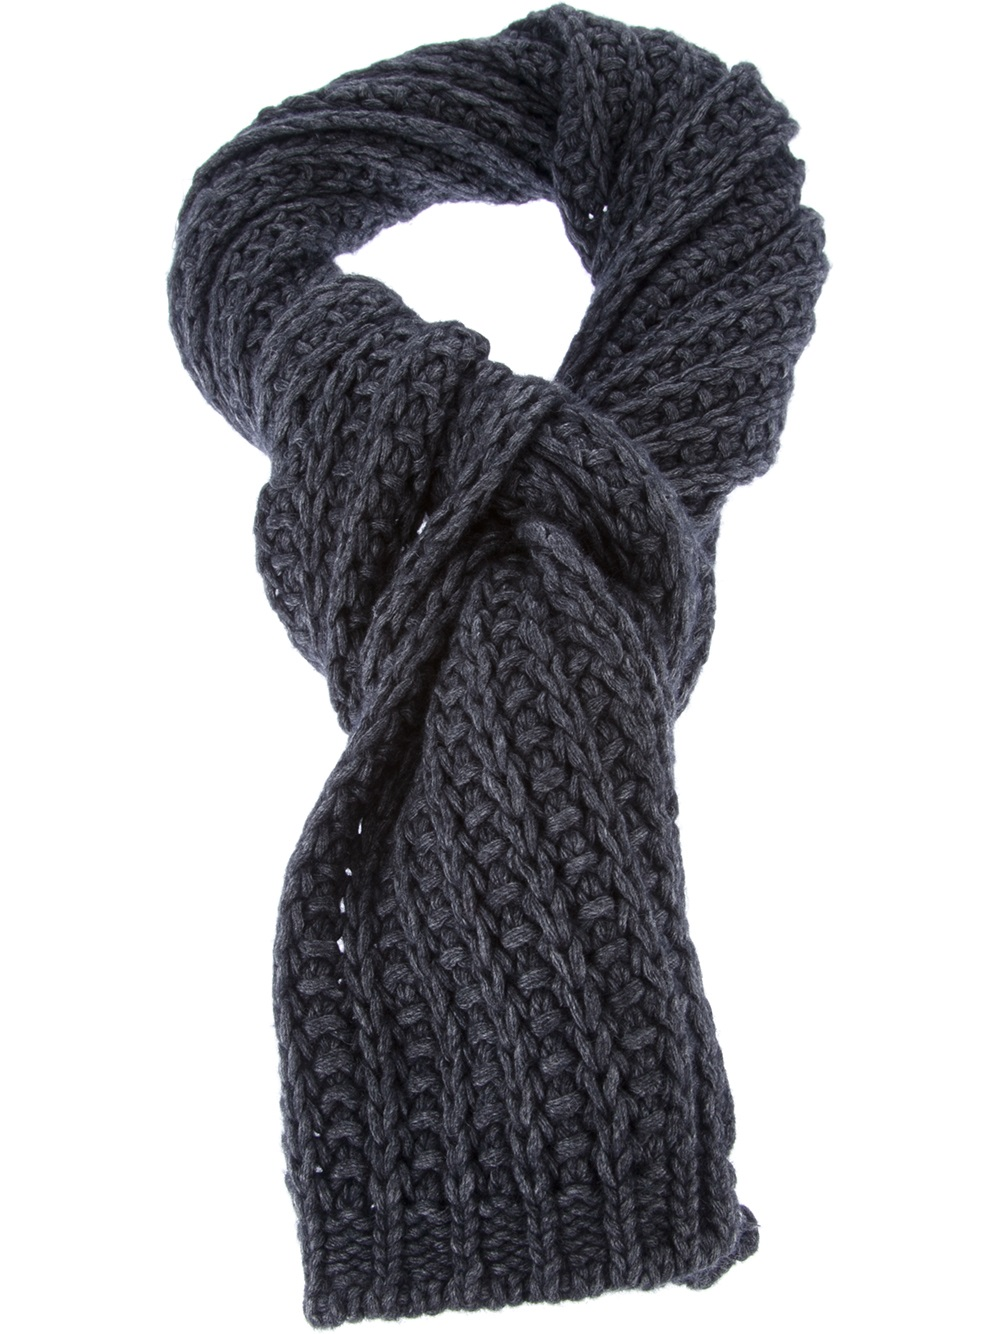 Knitting Chunky Scarf : Lyst moncler chunky knit scarf in gray